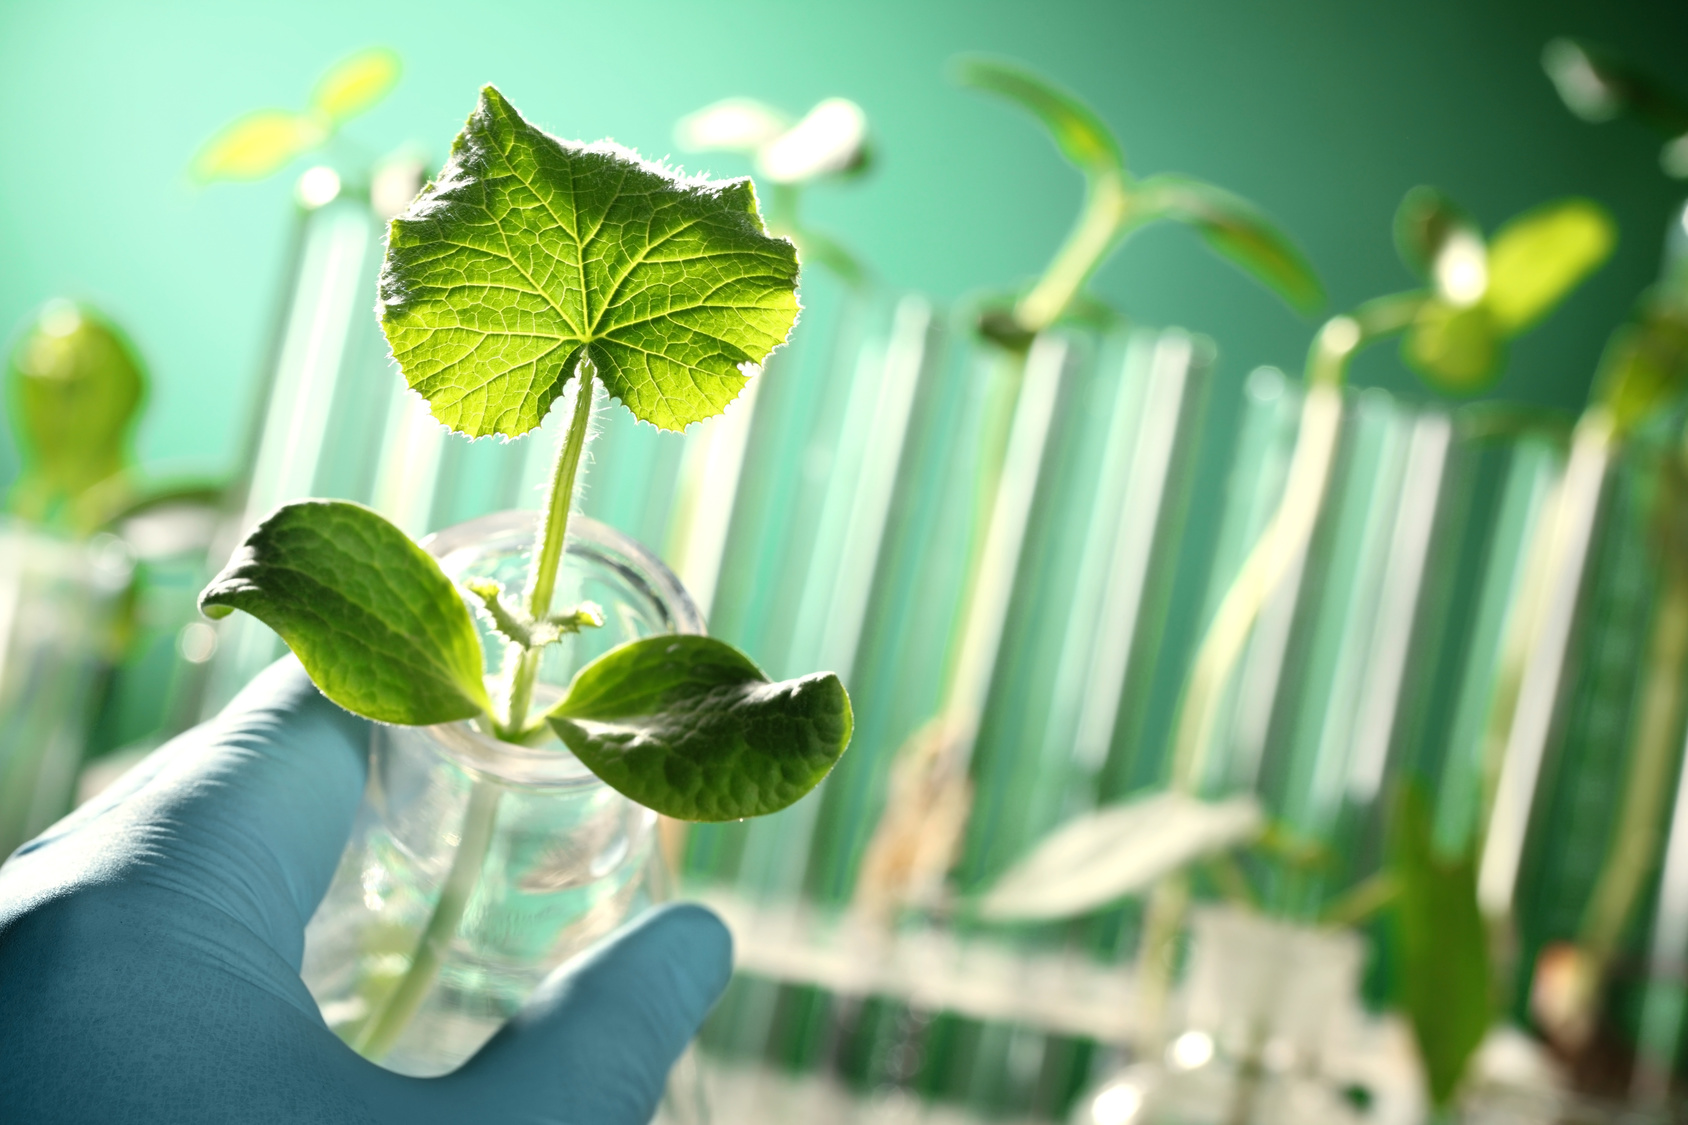 symbolic image of plants in hydroponic cultivation